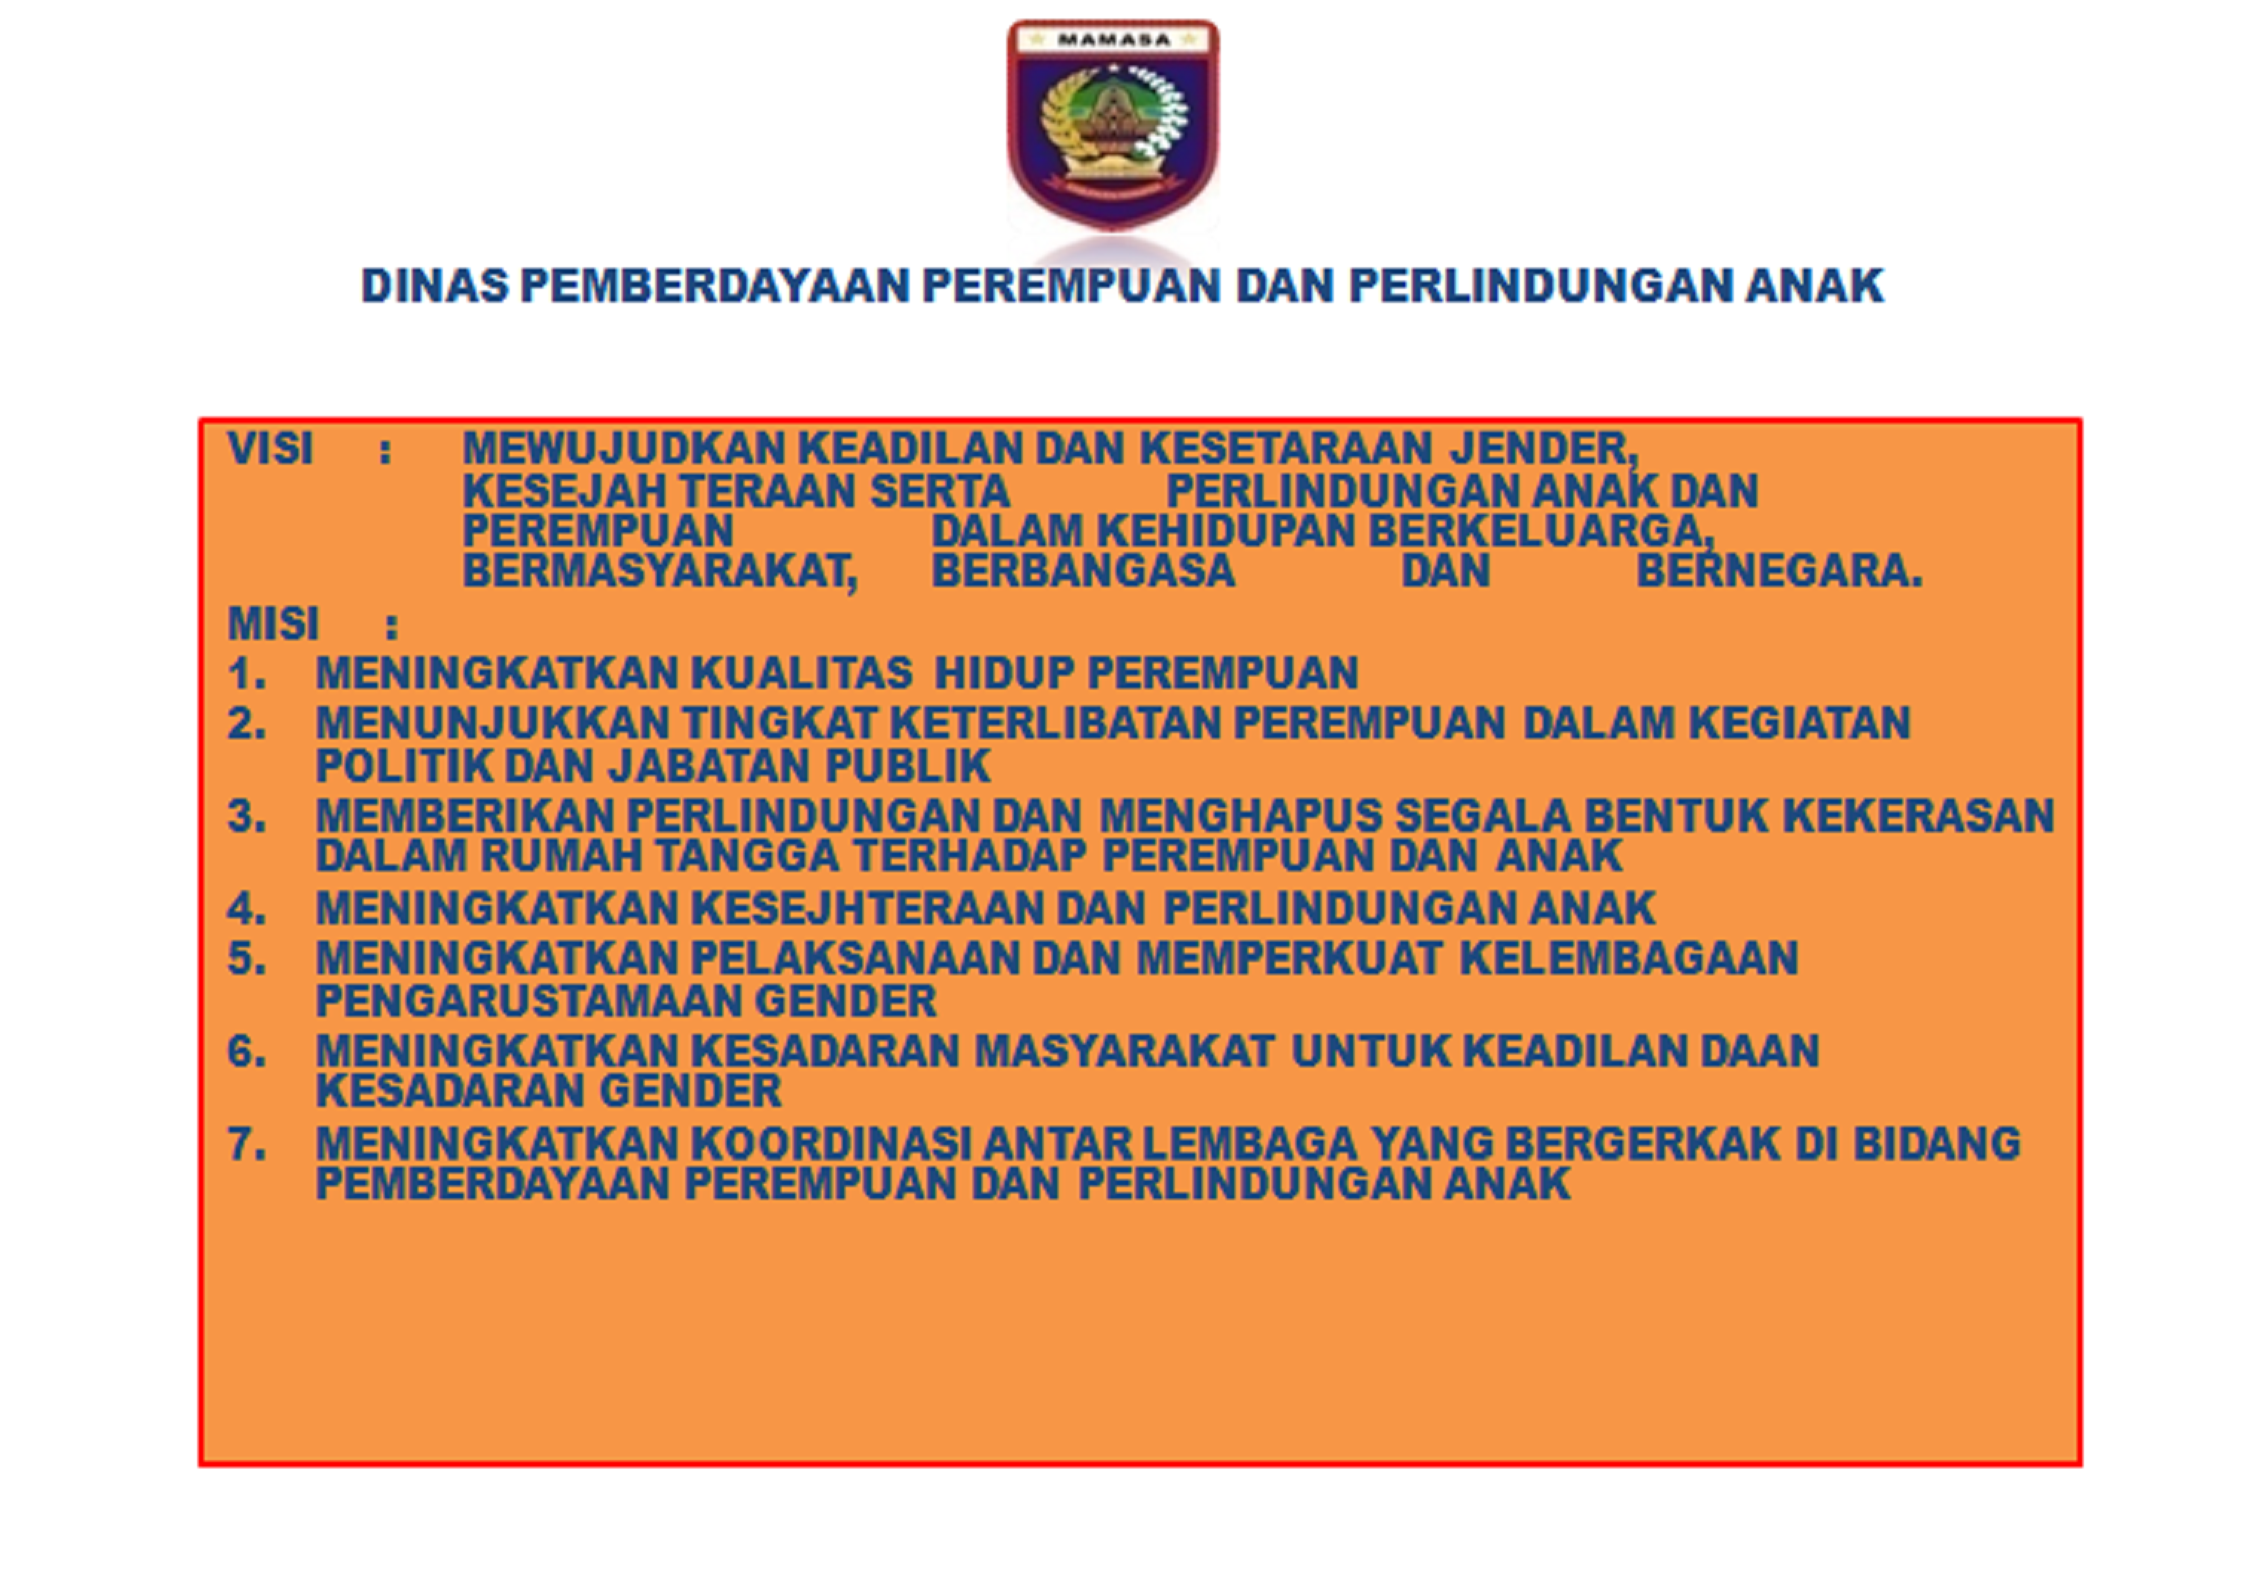 http://pd3a.mamasakab.go.id/index_files/vlb_images1/visi%20dan%20misi.png